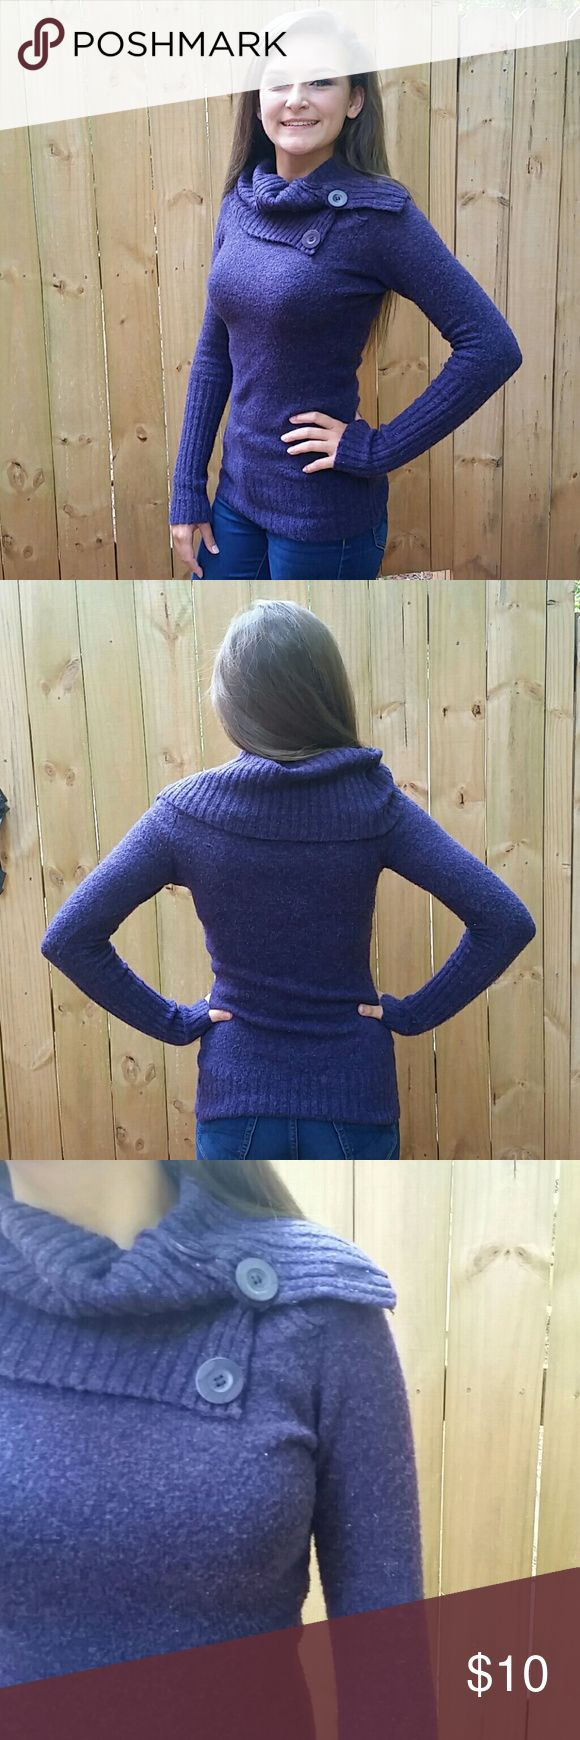 Energie Purple Sweater This sweater is a perfect addition to your winter closet! It's  elegant and cozy. Perfect for a winter dinner date or occasion. The regal purple sets you apart from the normal winter colors.  Slightly used, in good condition. Barely worn. Energie Sweaters Cowl & Turtlenecks